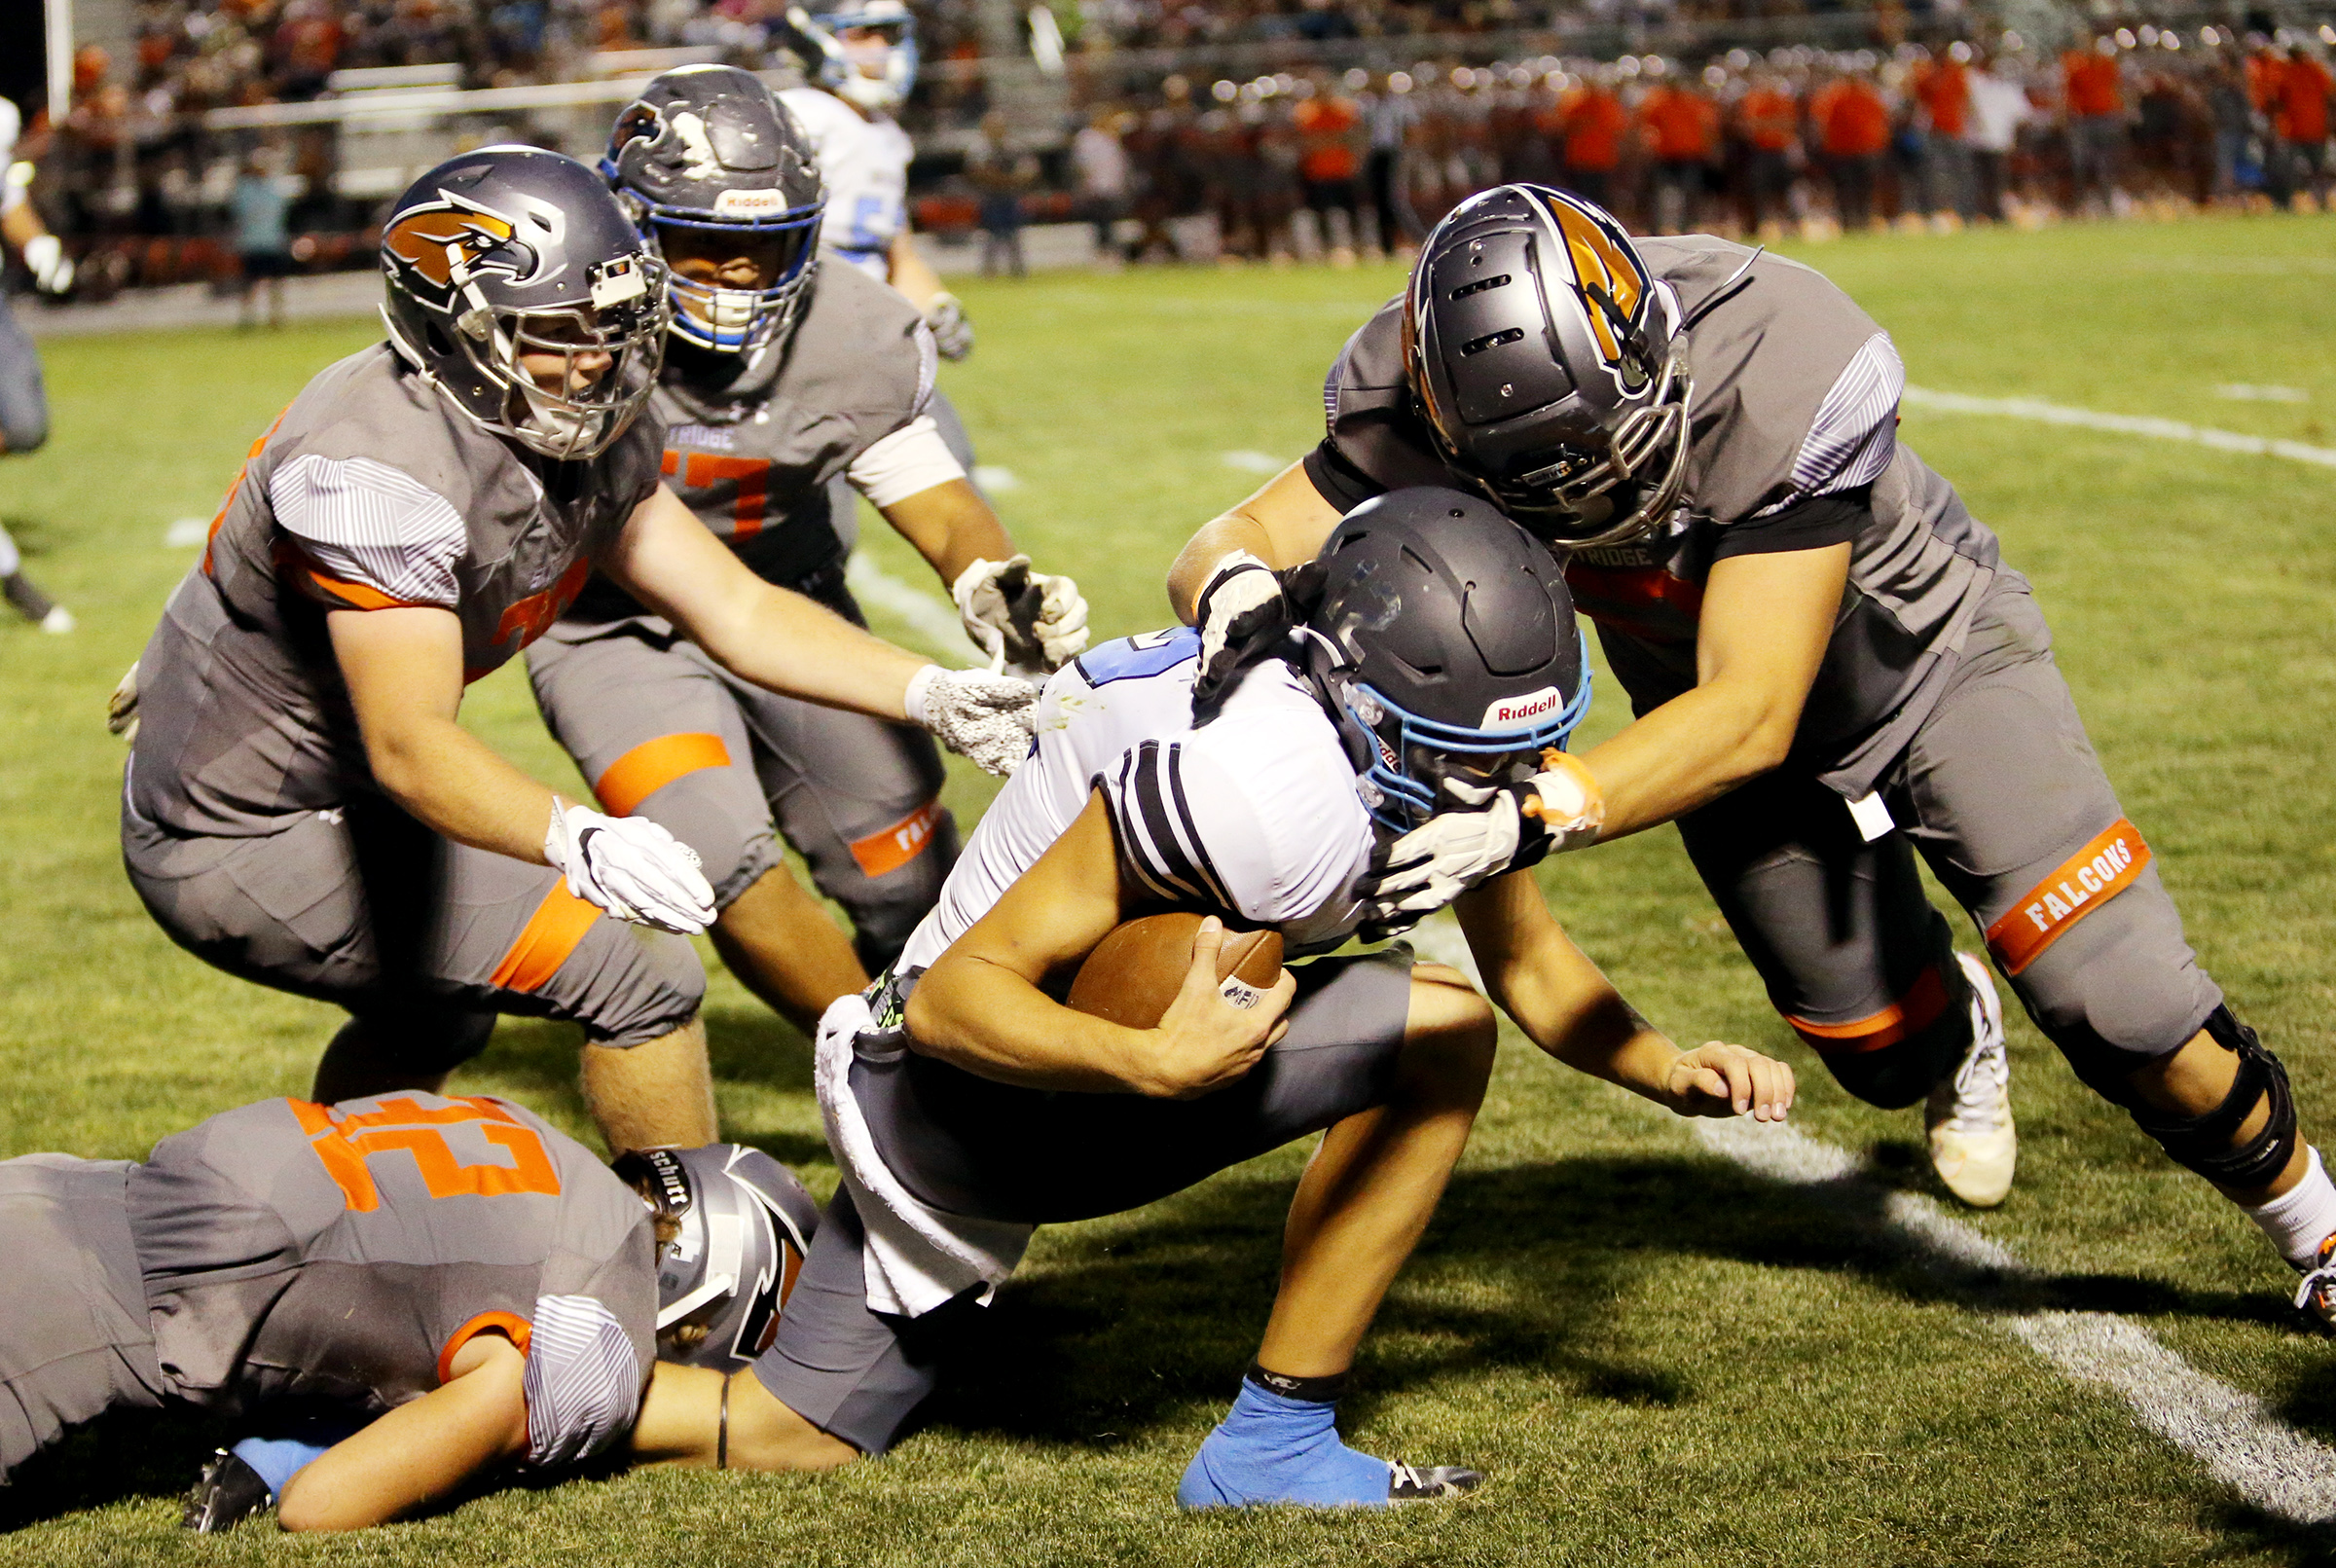 Skyridge's defense gangs up to bring down Sky View's Mason Falslev as they play in a high school football game in Lehi on Friday, Aug. 23, 2019. Skyridge won 18-10.